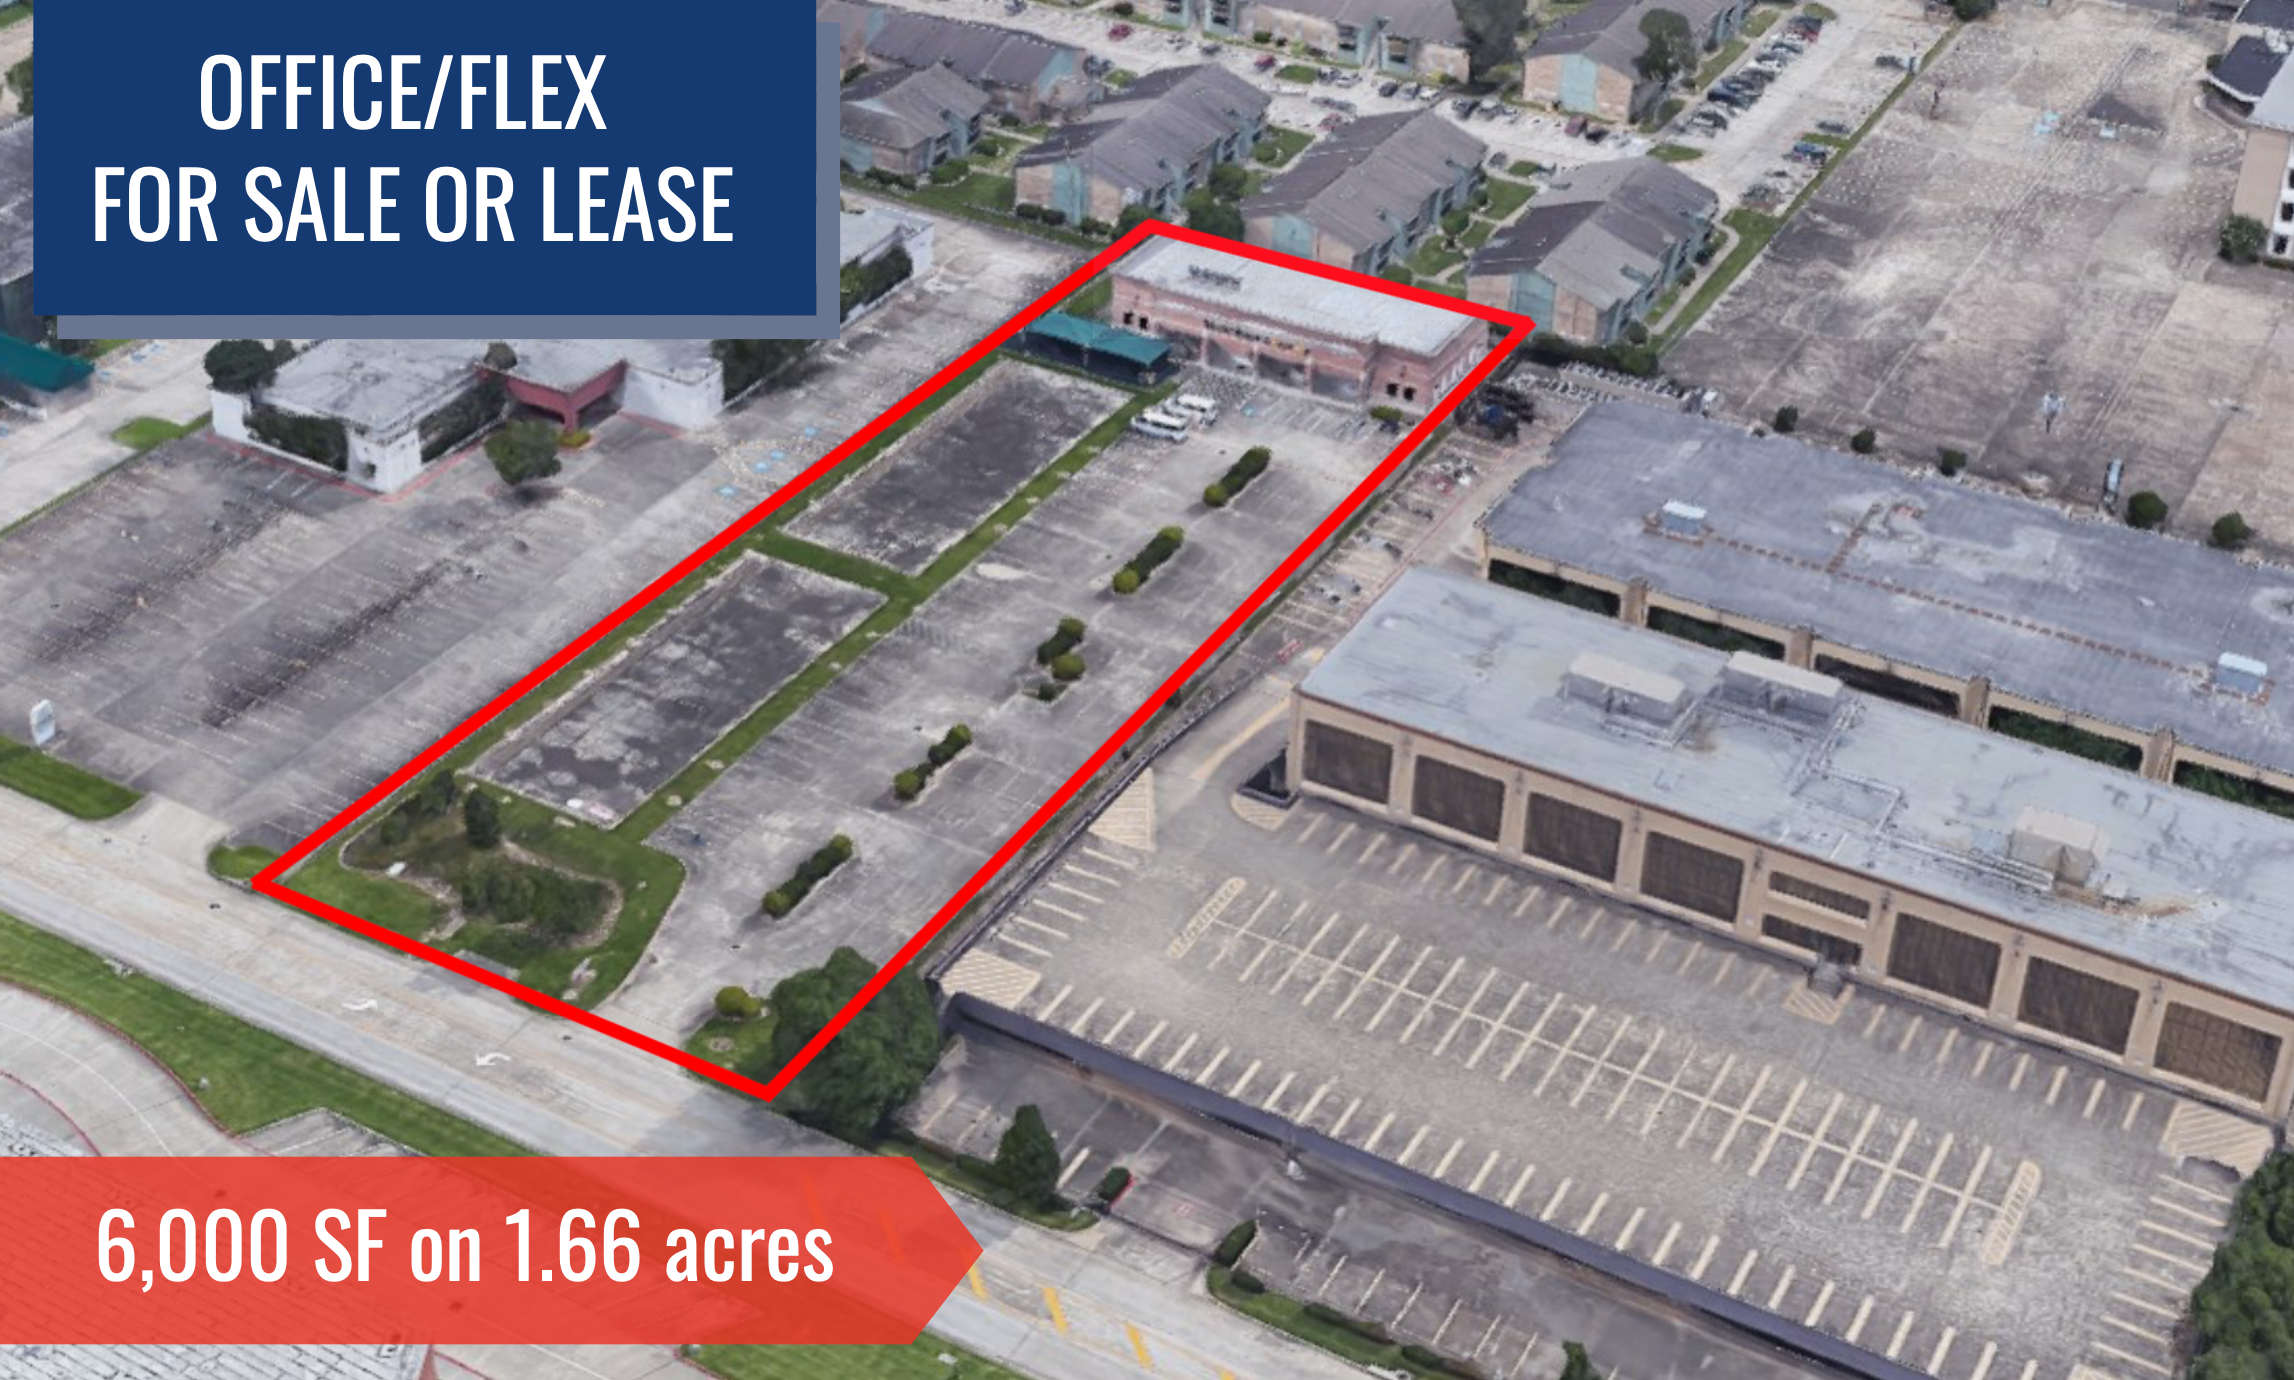 Must Sell Flex Warehouse for Sale w/2 BTS Slabs Ready